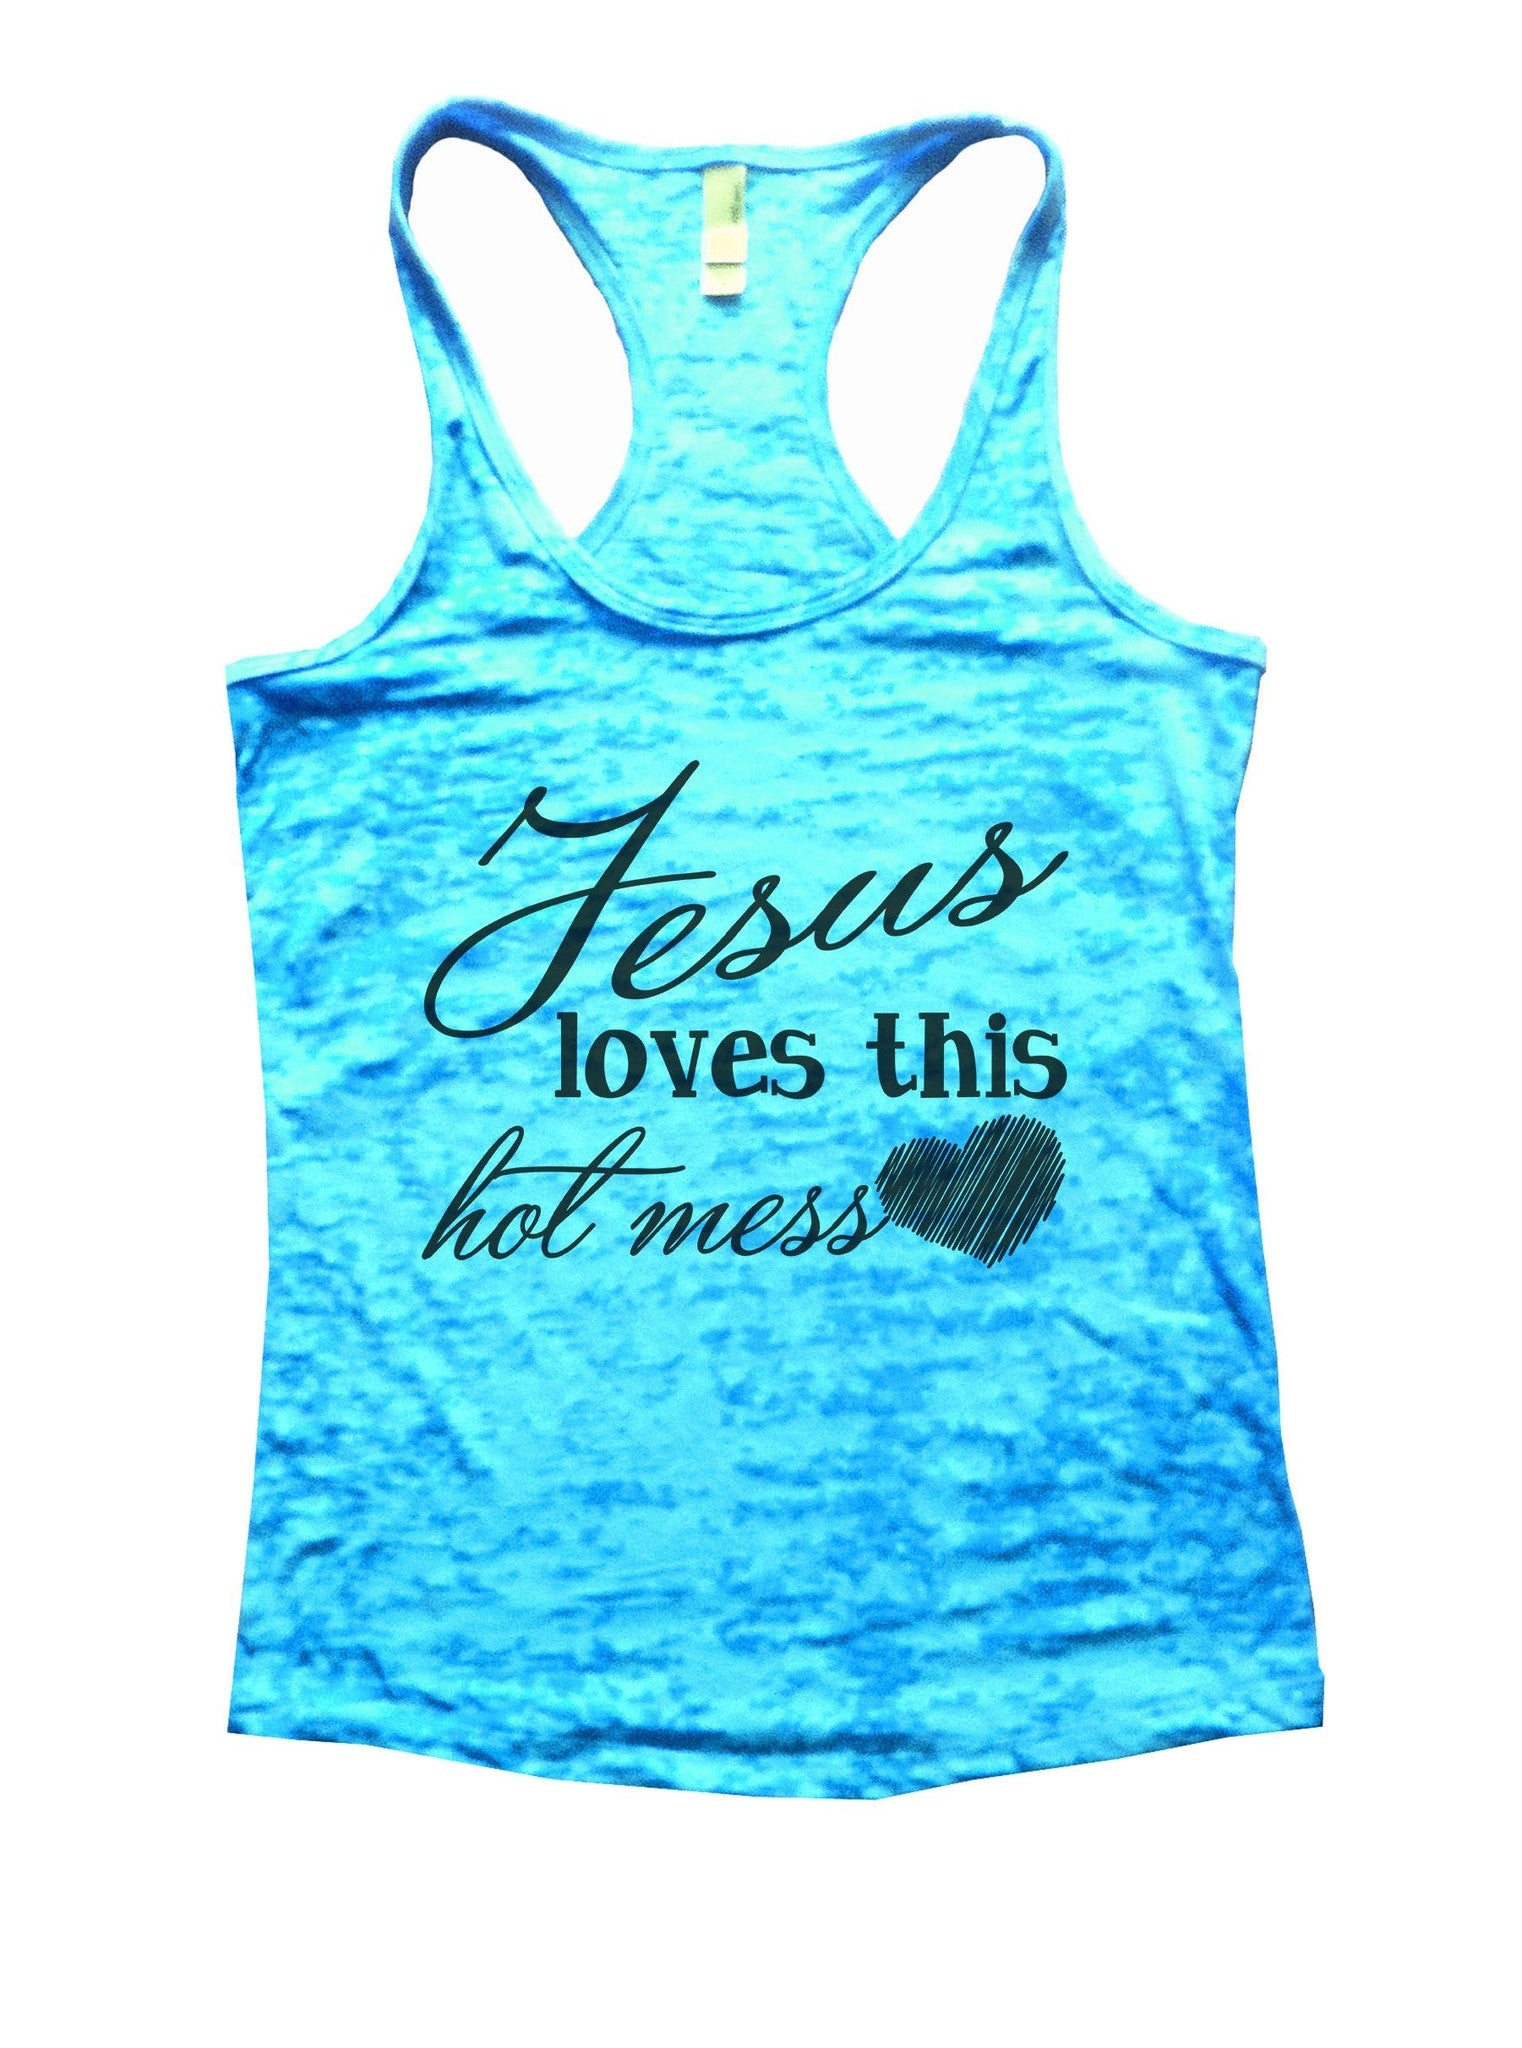 Jesus Loves This Hot Mess Burnout Tank Top By BurnoutTankTops.com - 891 - Funny Shirts Tank Tops Burnouts and Triblends  - 4